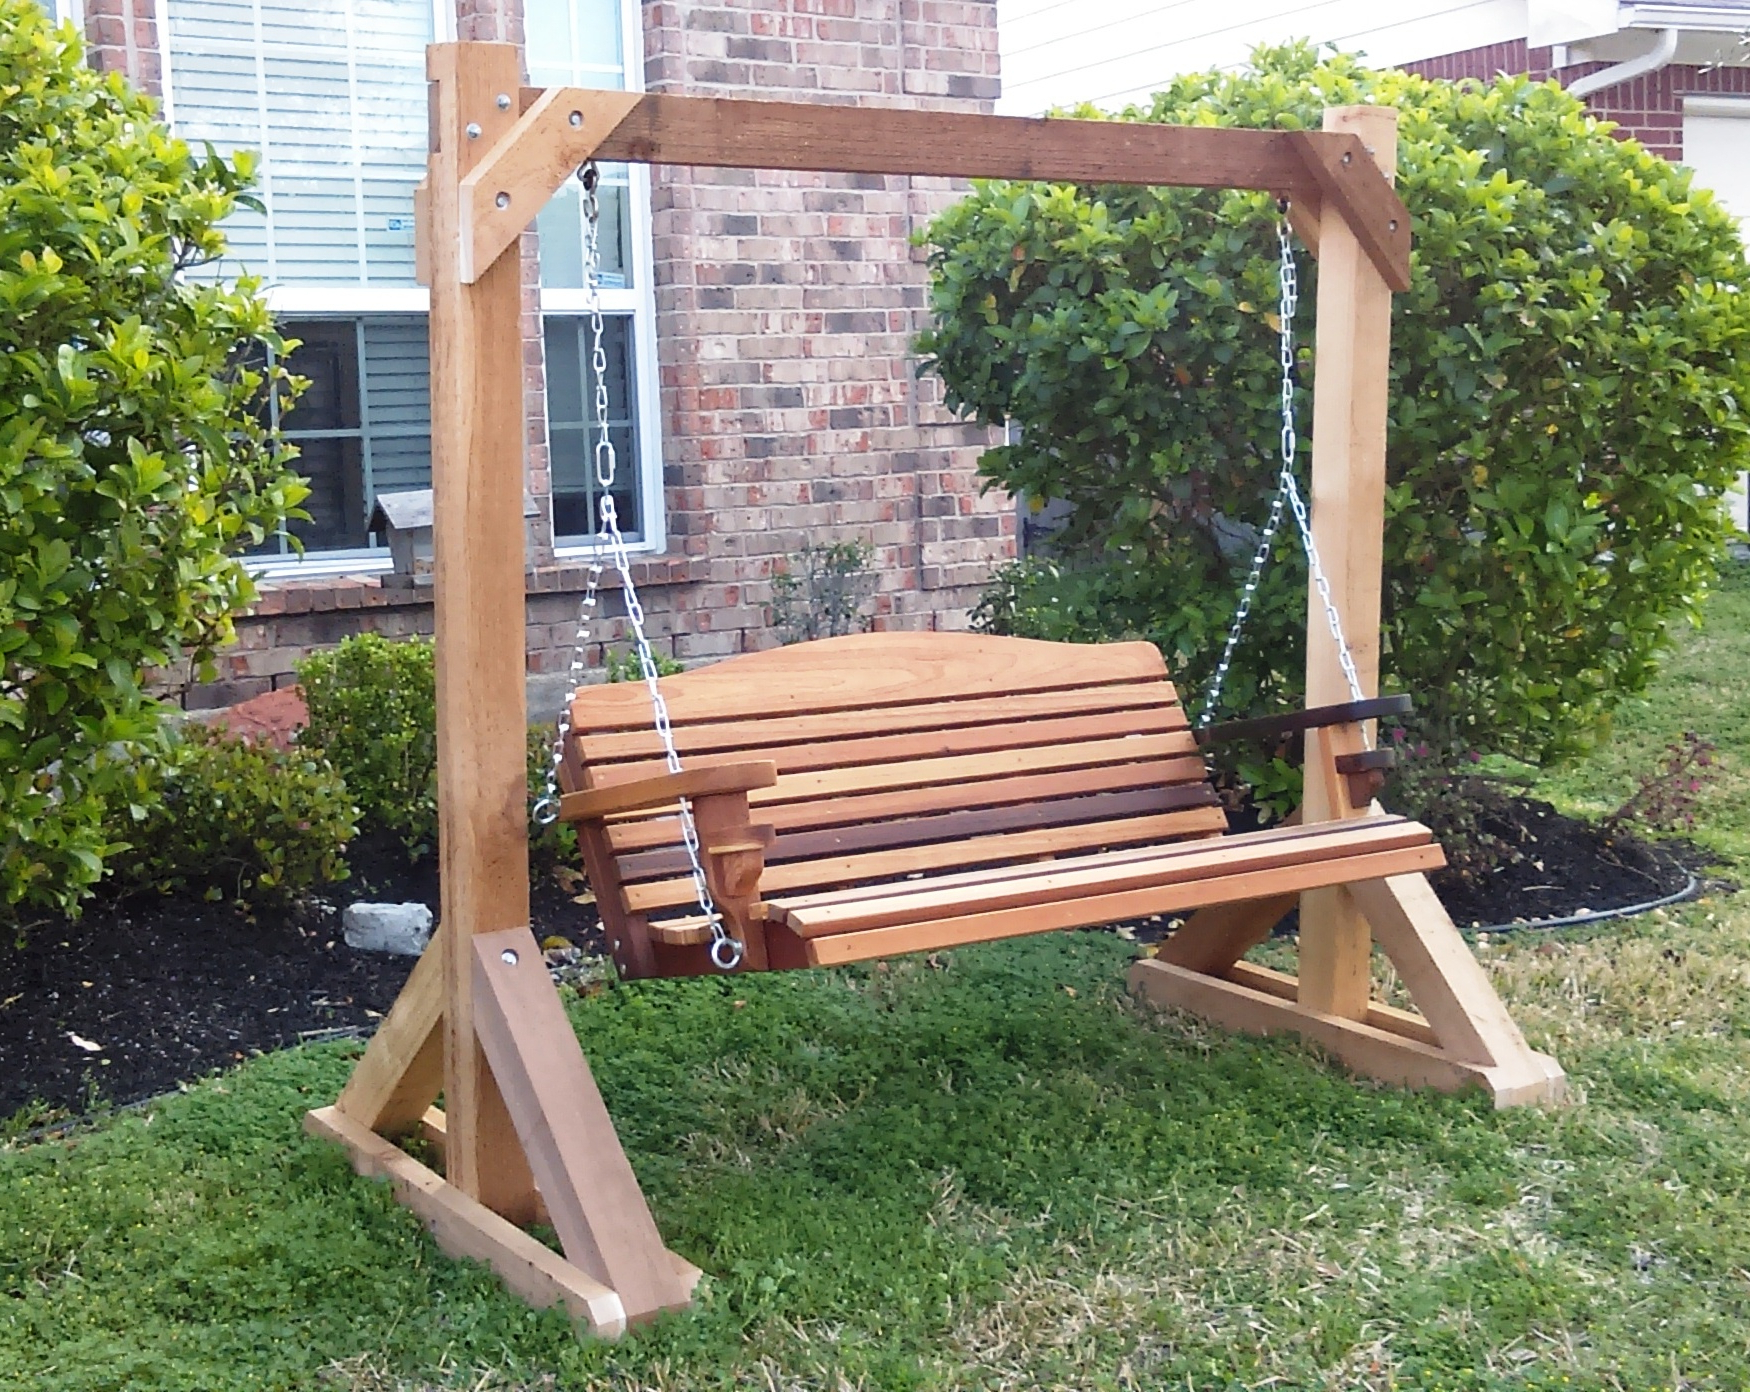 Widely Used Patio Porch Swings With Stand In Inspirations: Enjoy Your All Day With Cozy Wooden Porch (View 20 of 25)